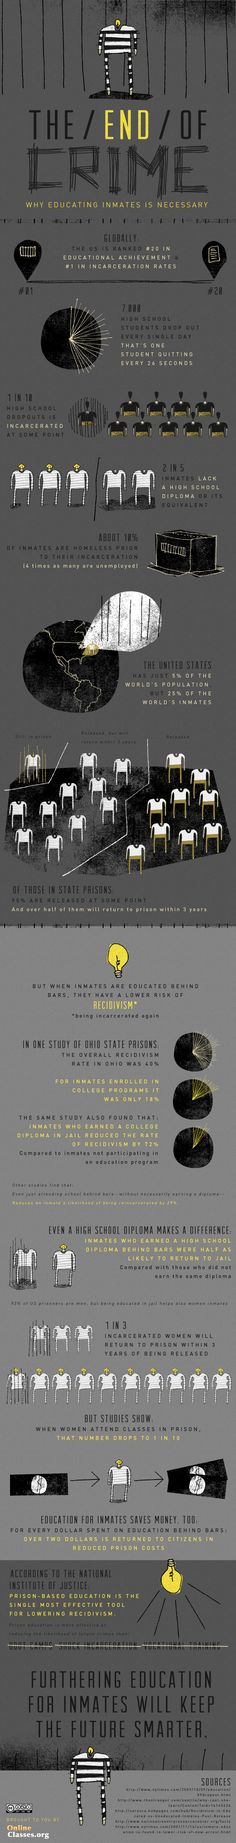 The End of Crime Infographic